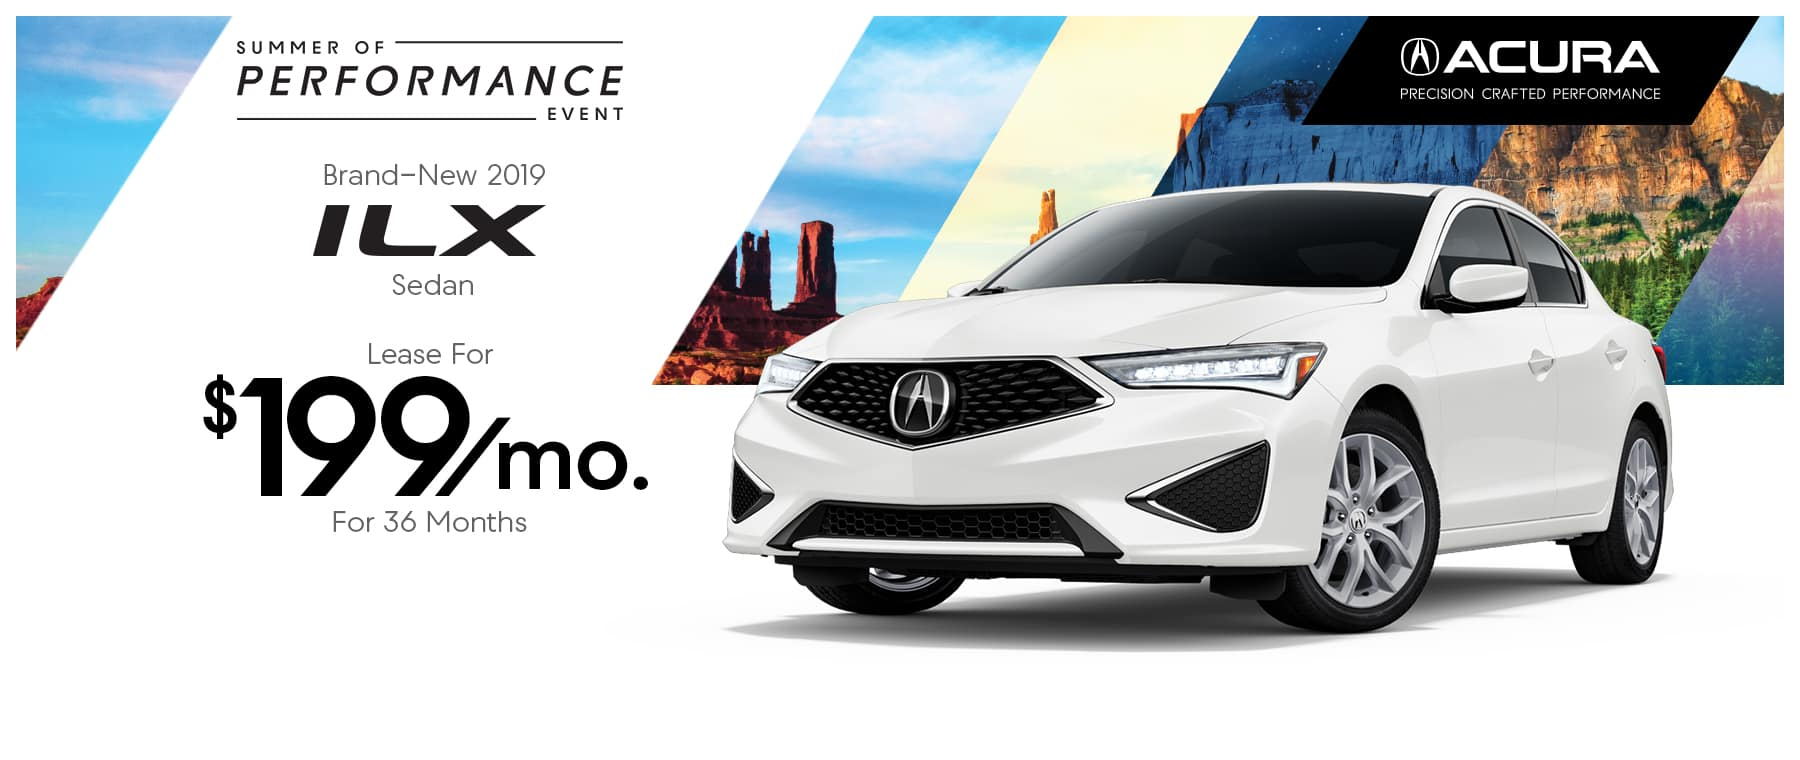 Acura Dealers Long Island >> Acura New And Used Car Dealer In Woodside Ny Paragon Acura